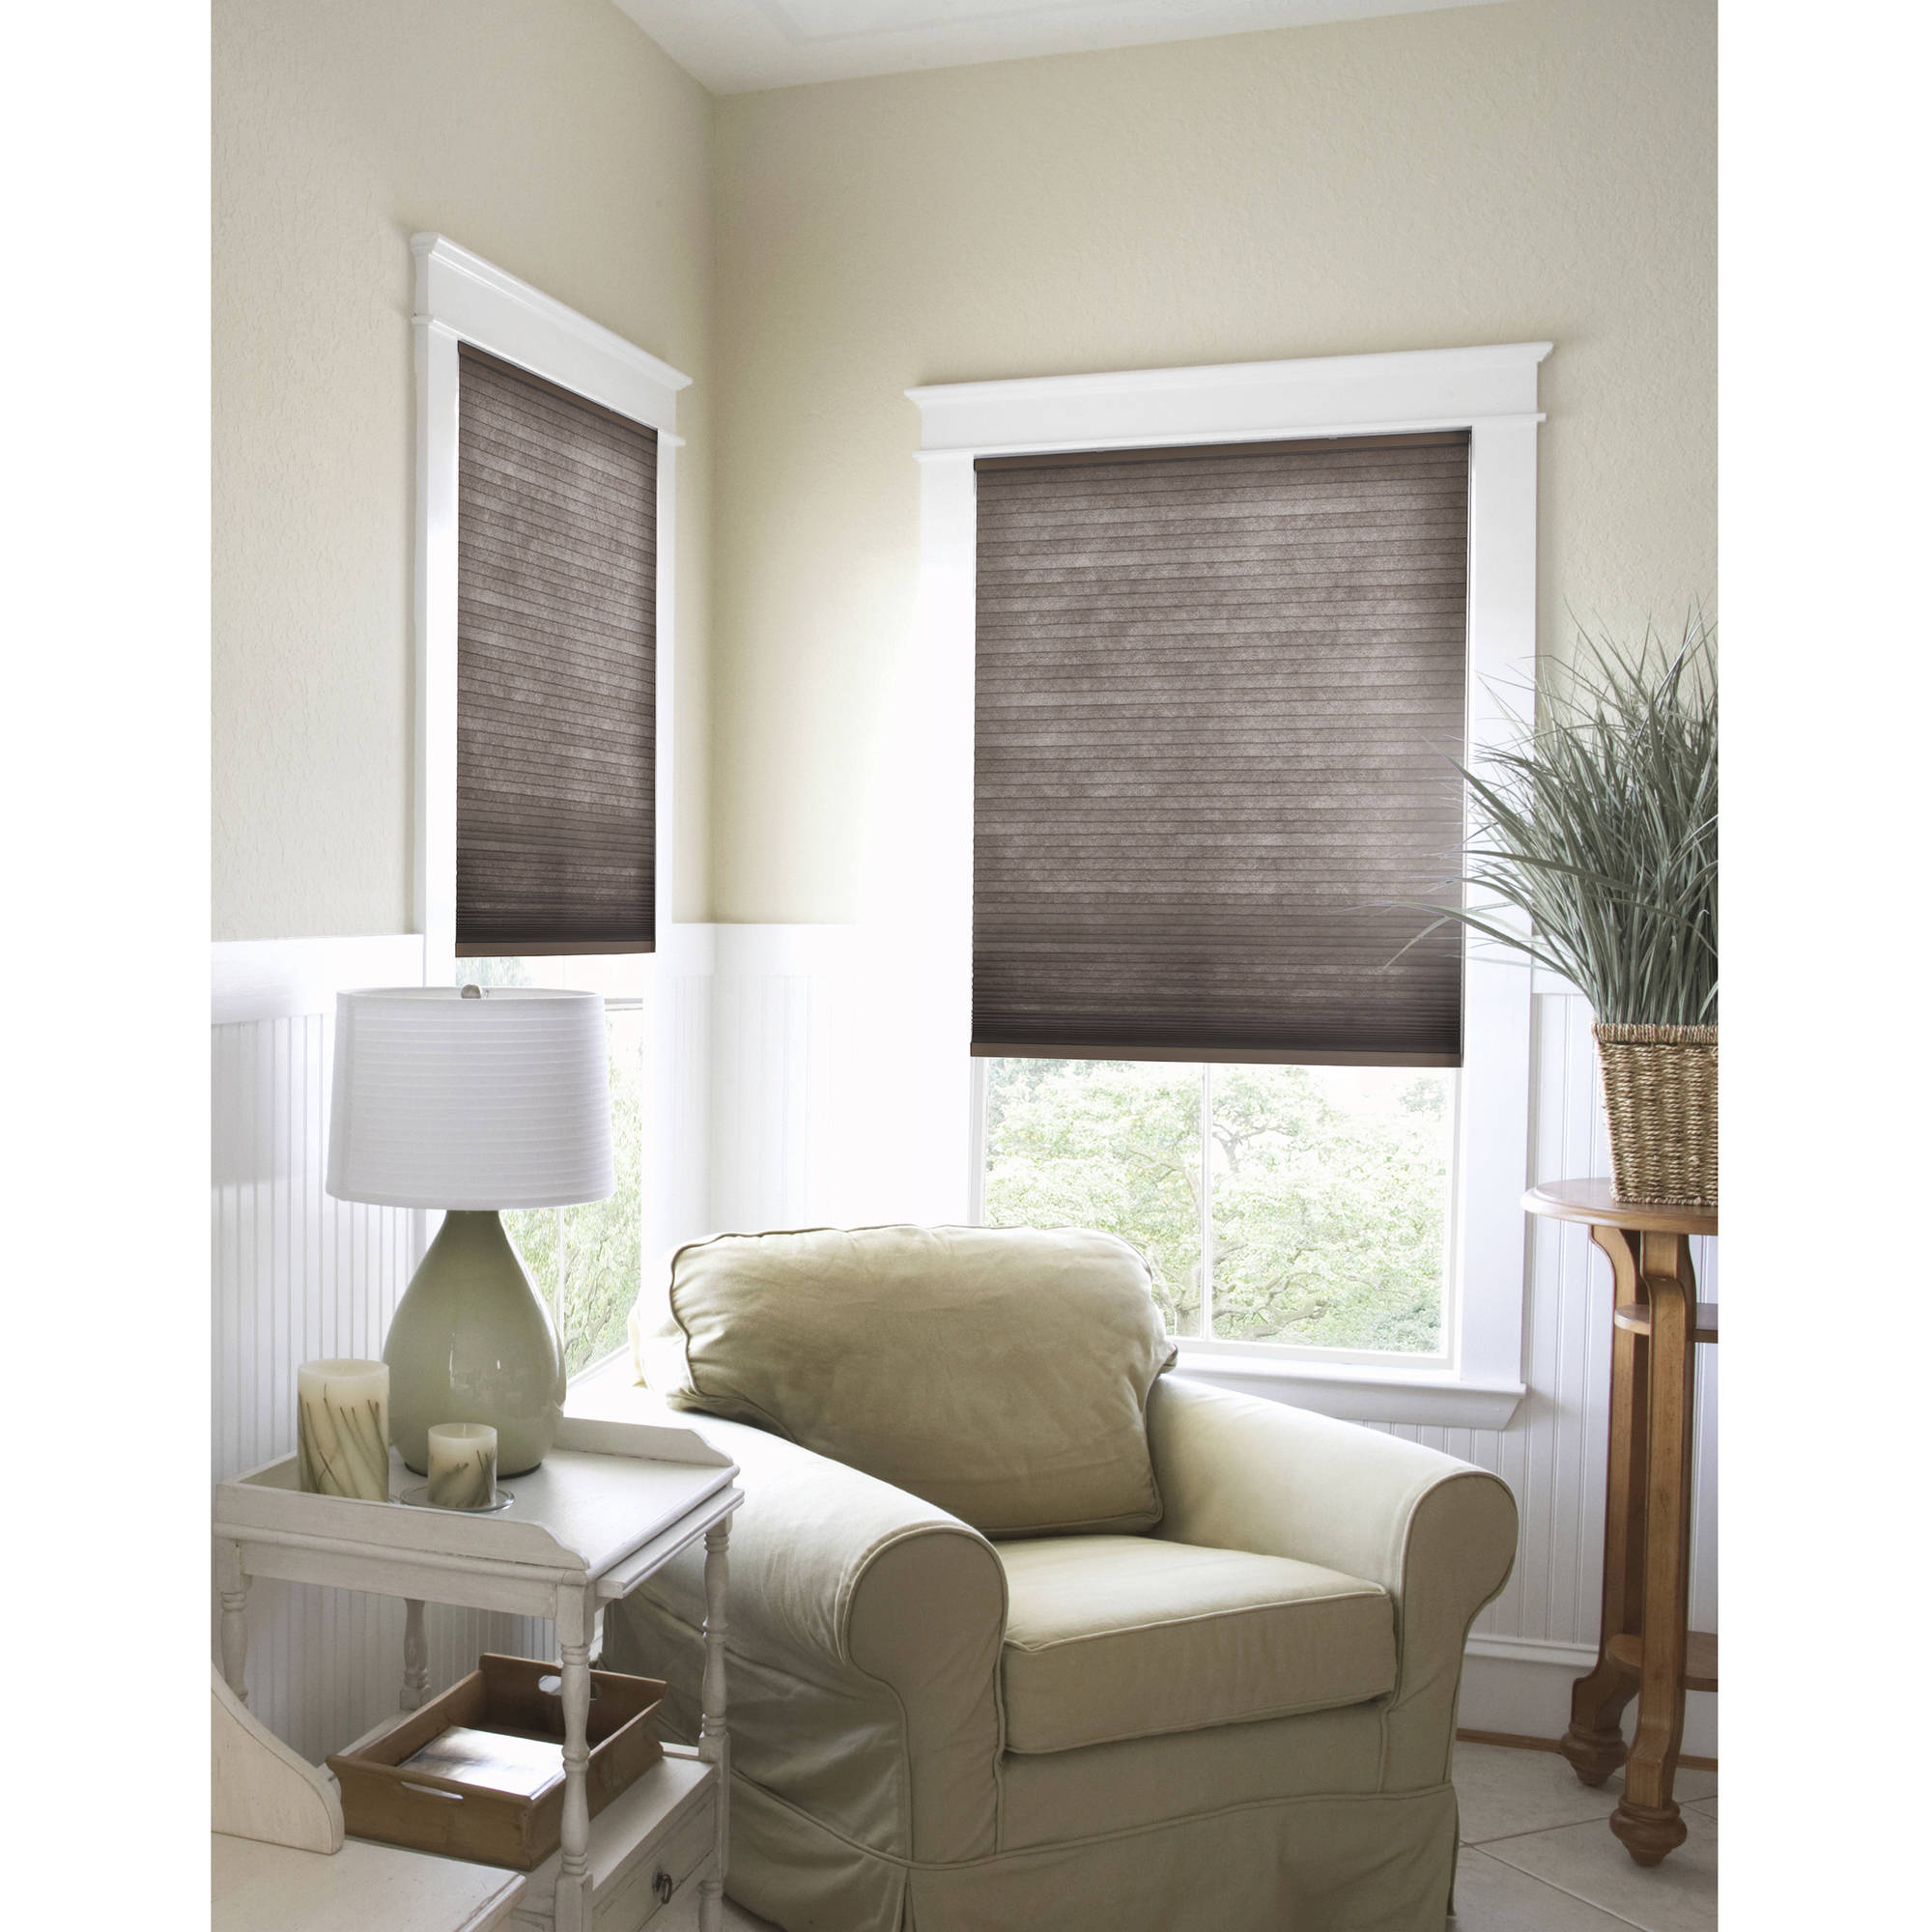 "Richfield Studio Cordless Light-Filtering Cellular Shade, Coffee Bean, 64"" Length"